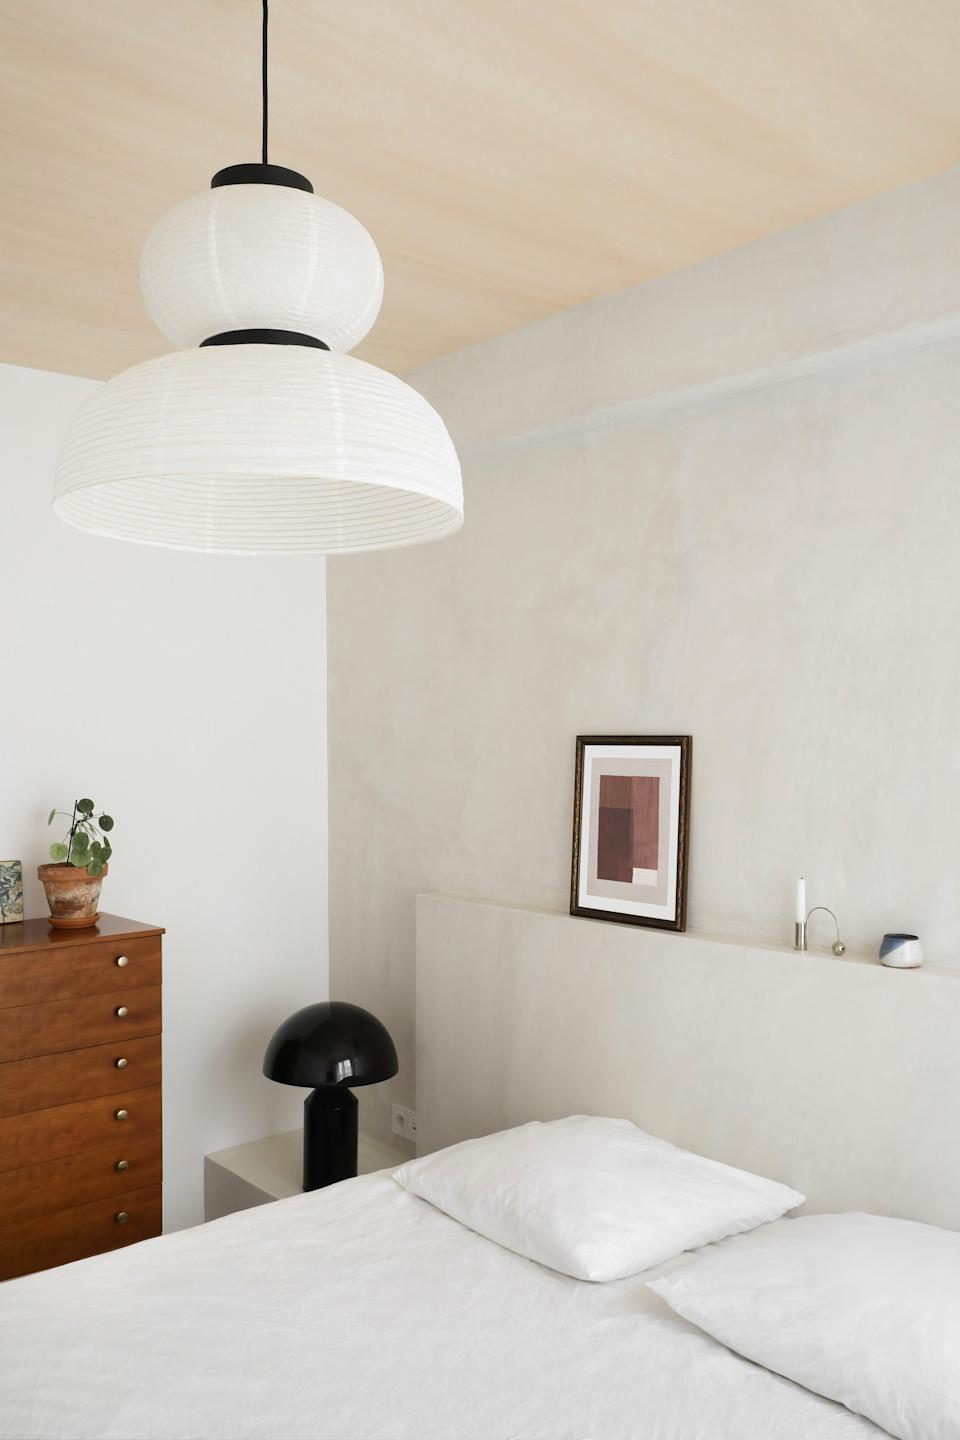 """<div class=""""caption"""">The serene primary bedroom features an Oluce lamp, a <a href=""""https://fermliving.com/products/balance-candle-holder-chrome"""" rel=""""nofollow noopener"""" target=""""_blank"""" data-ylk=""""slk:Ferm Living candleholder"""" class=""""link rapid-noclick-resp"""">Ferm Living candleholder</a>, and an <a href=""""https://www.andtradition.com/products/formakami-jh4"""" rel=""""nofollow noopener"""" target=""""_blank"""" data-ylk=""""slk:&Tradition pendant lamp"""" class=""""link rapid-noclick-resp"""">&Tradition pendant lamp</a>.</div>"""